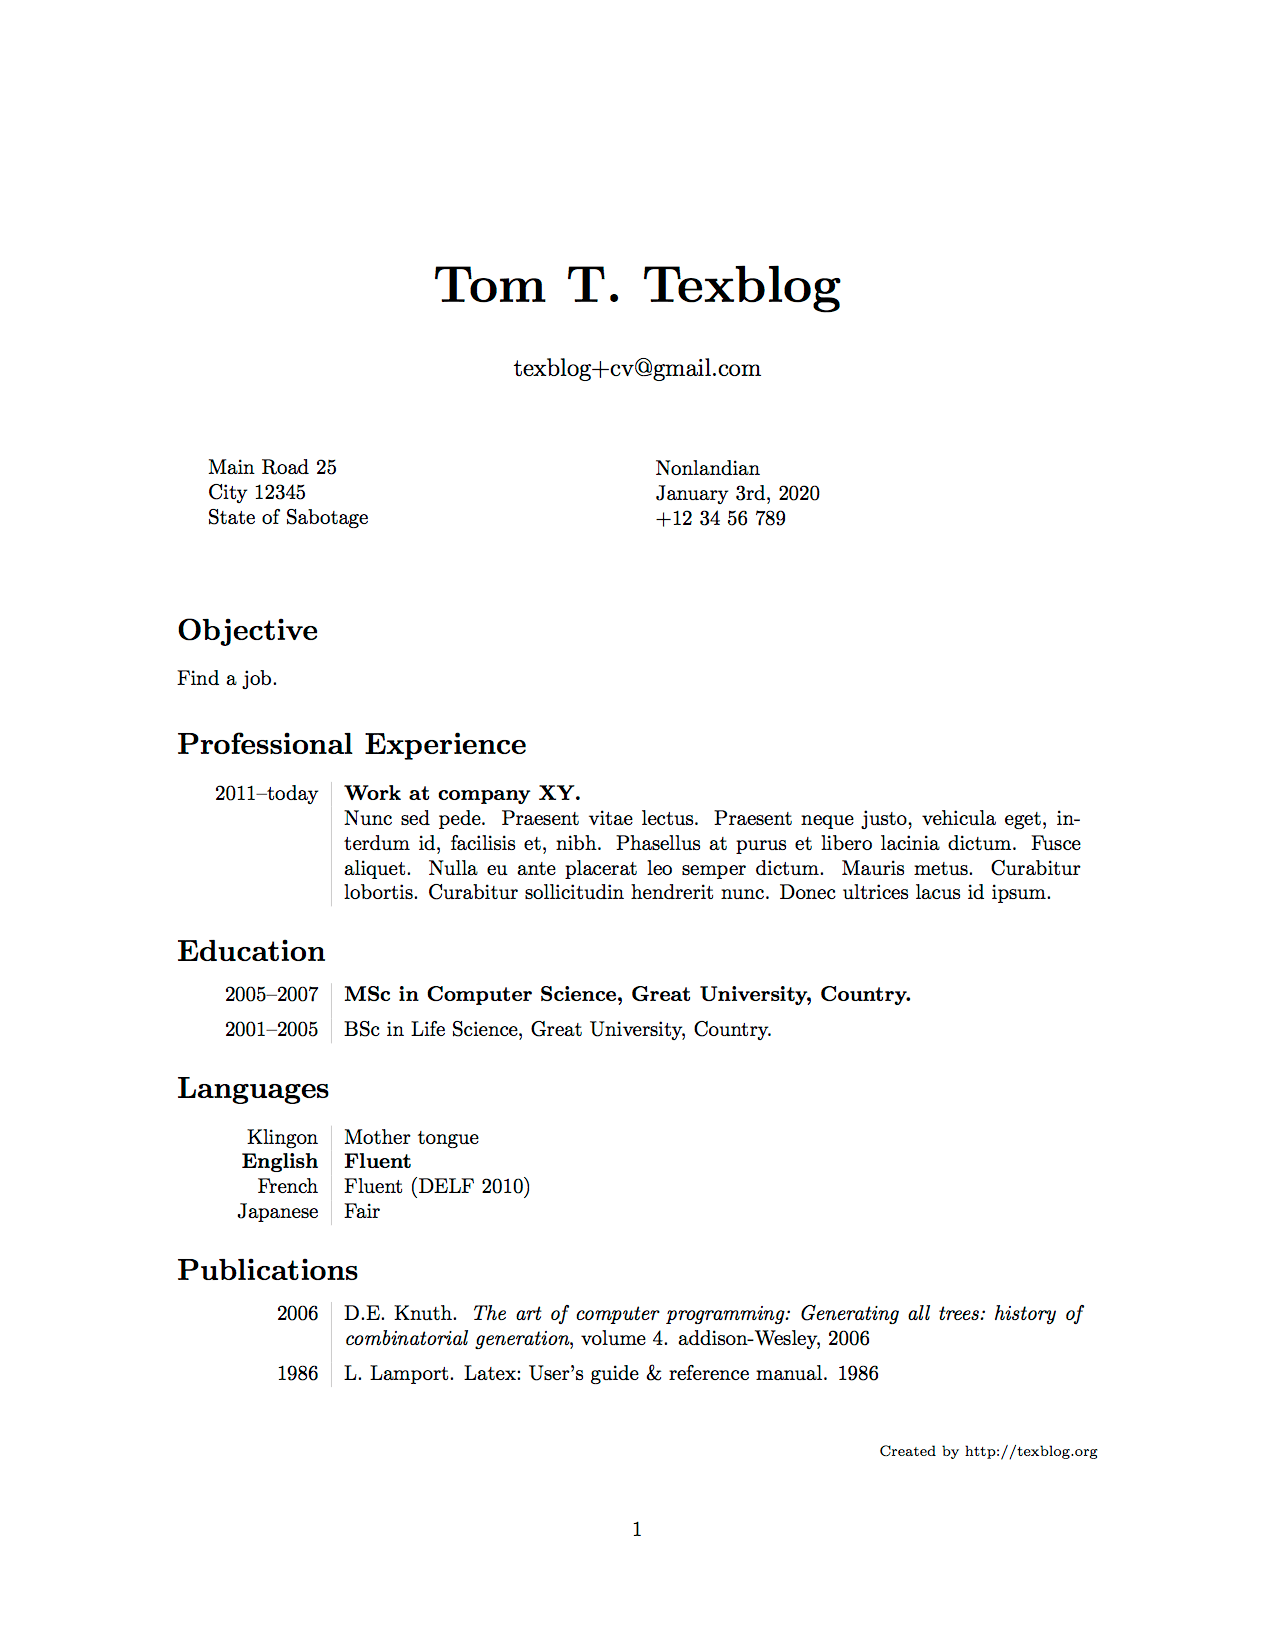 Writing a CV in LaTeX – texblog